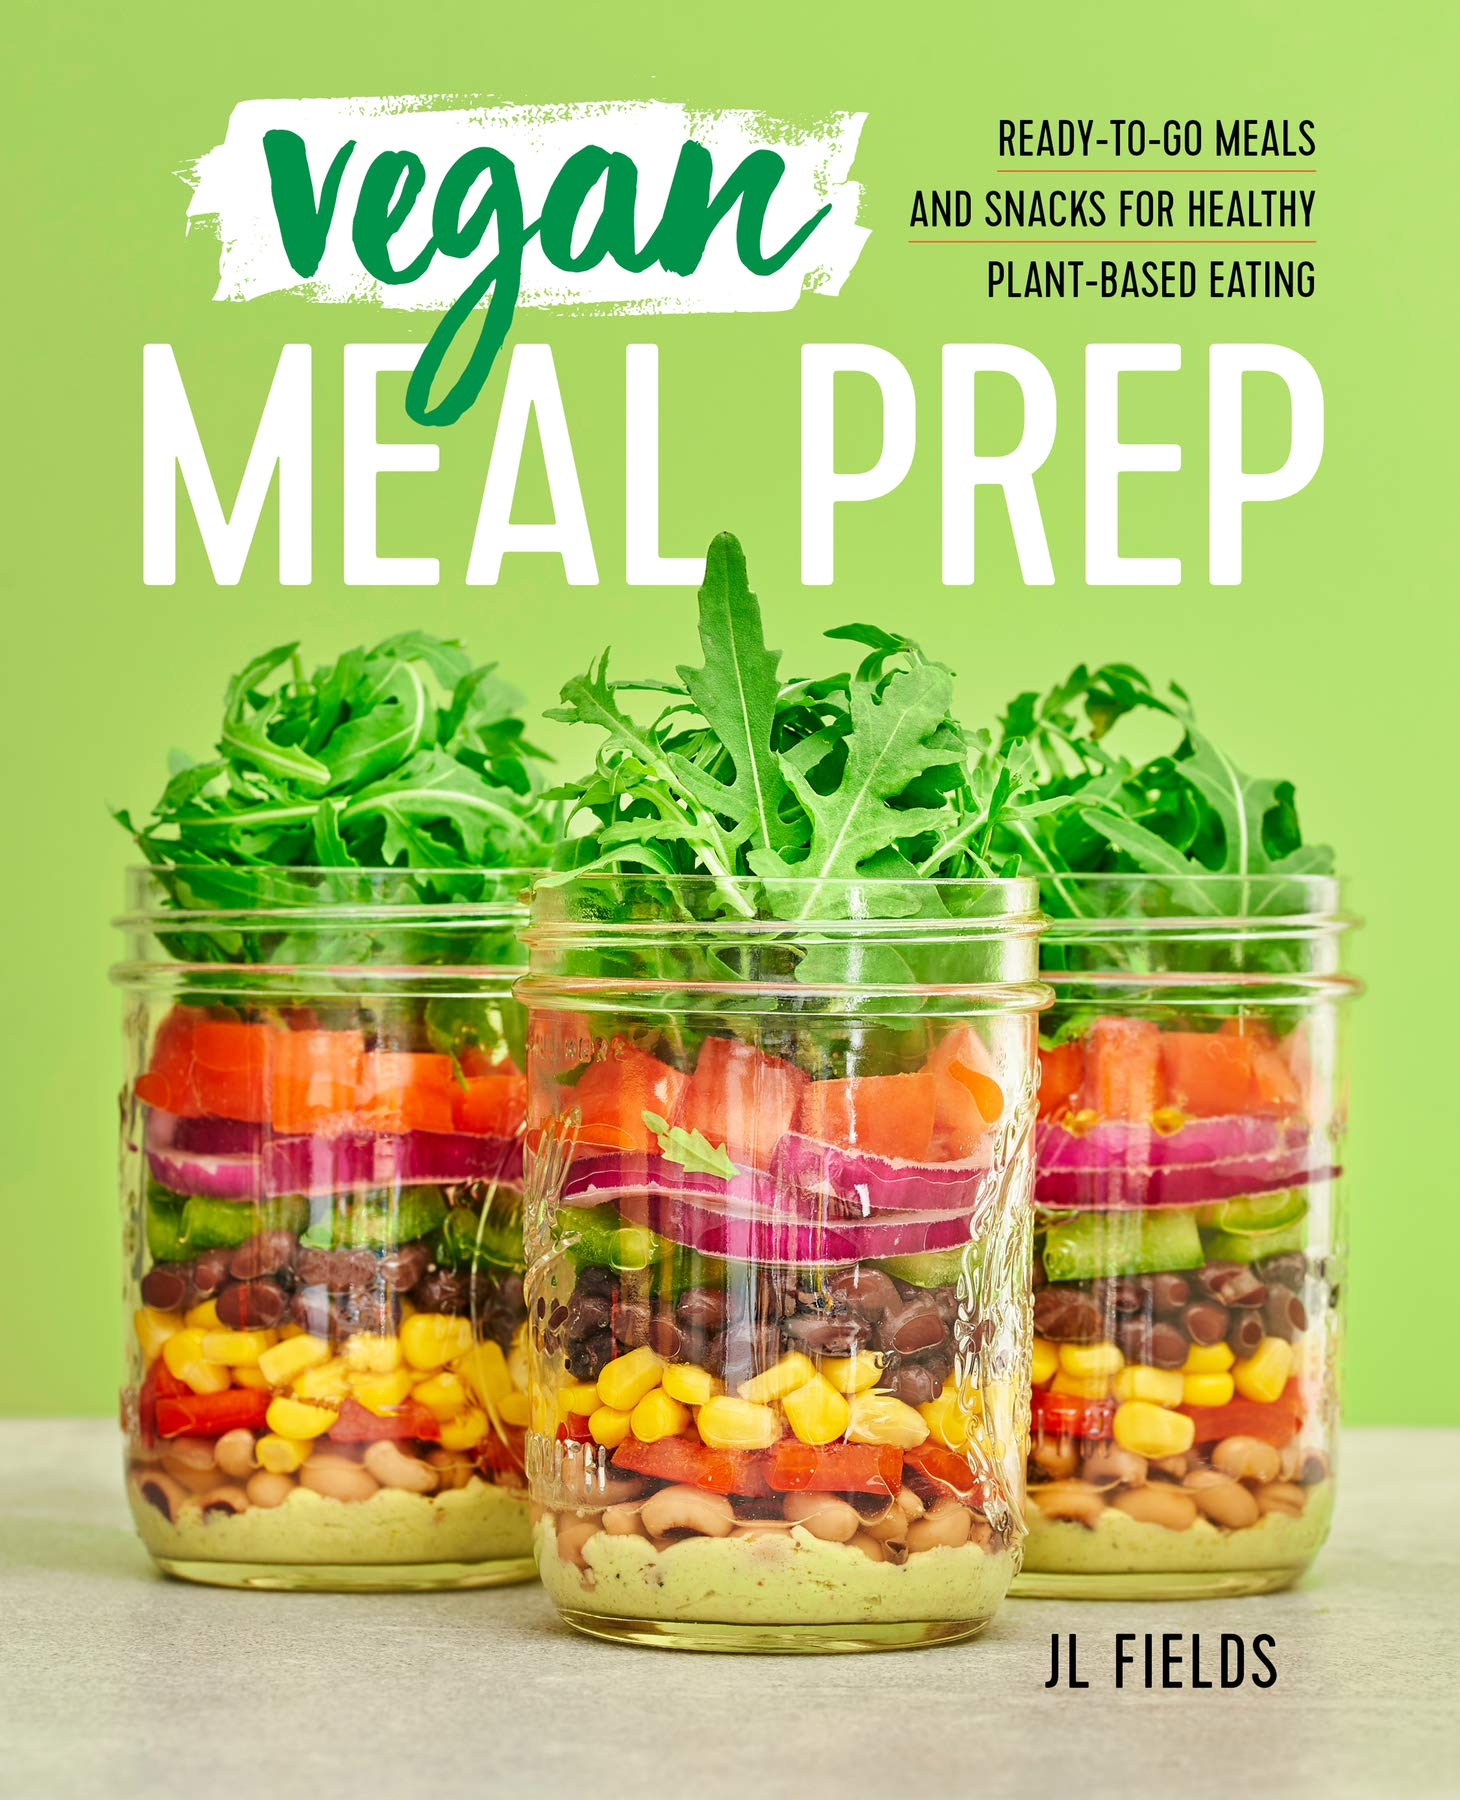 Iets Nieuws Vegan Meal Prep: Ready-to-Go Meals and Snacks for Healthy Plant #QV92